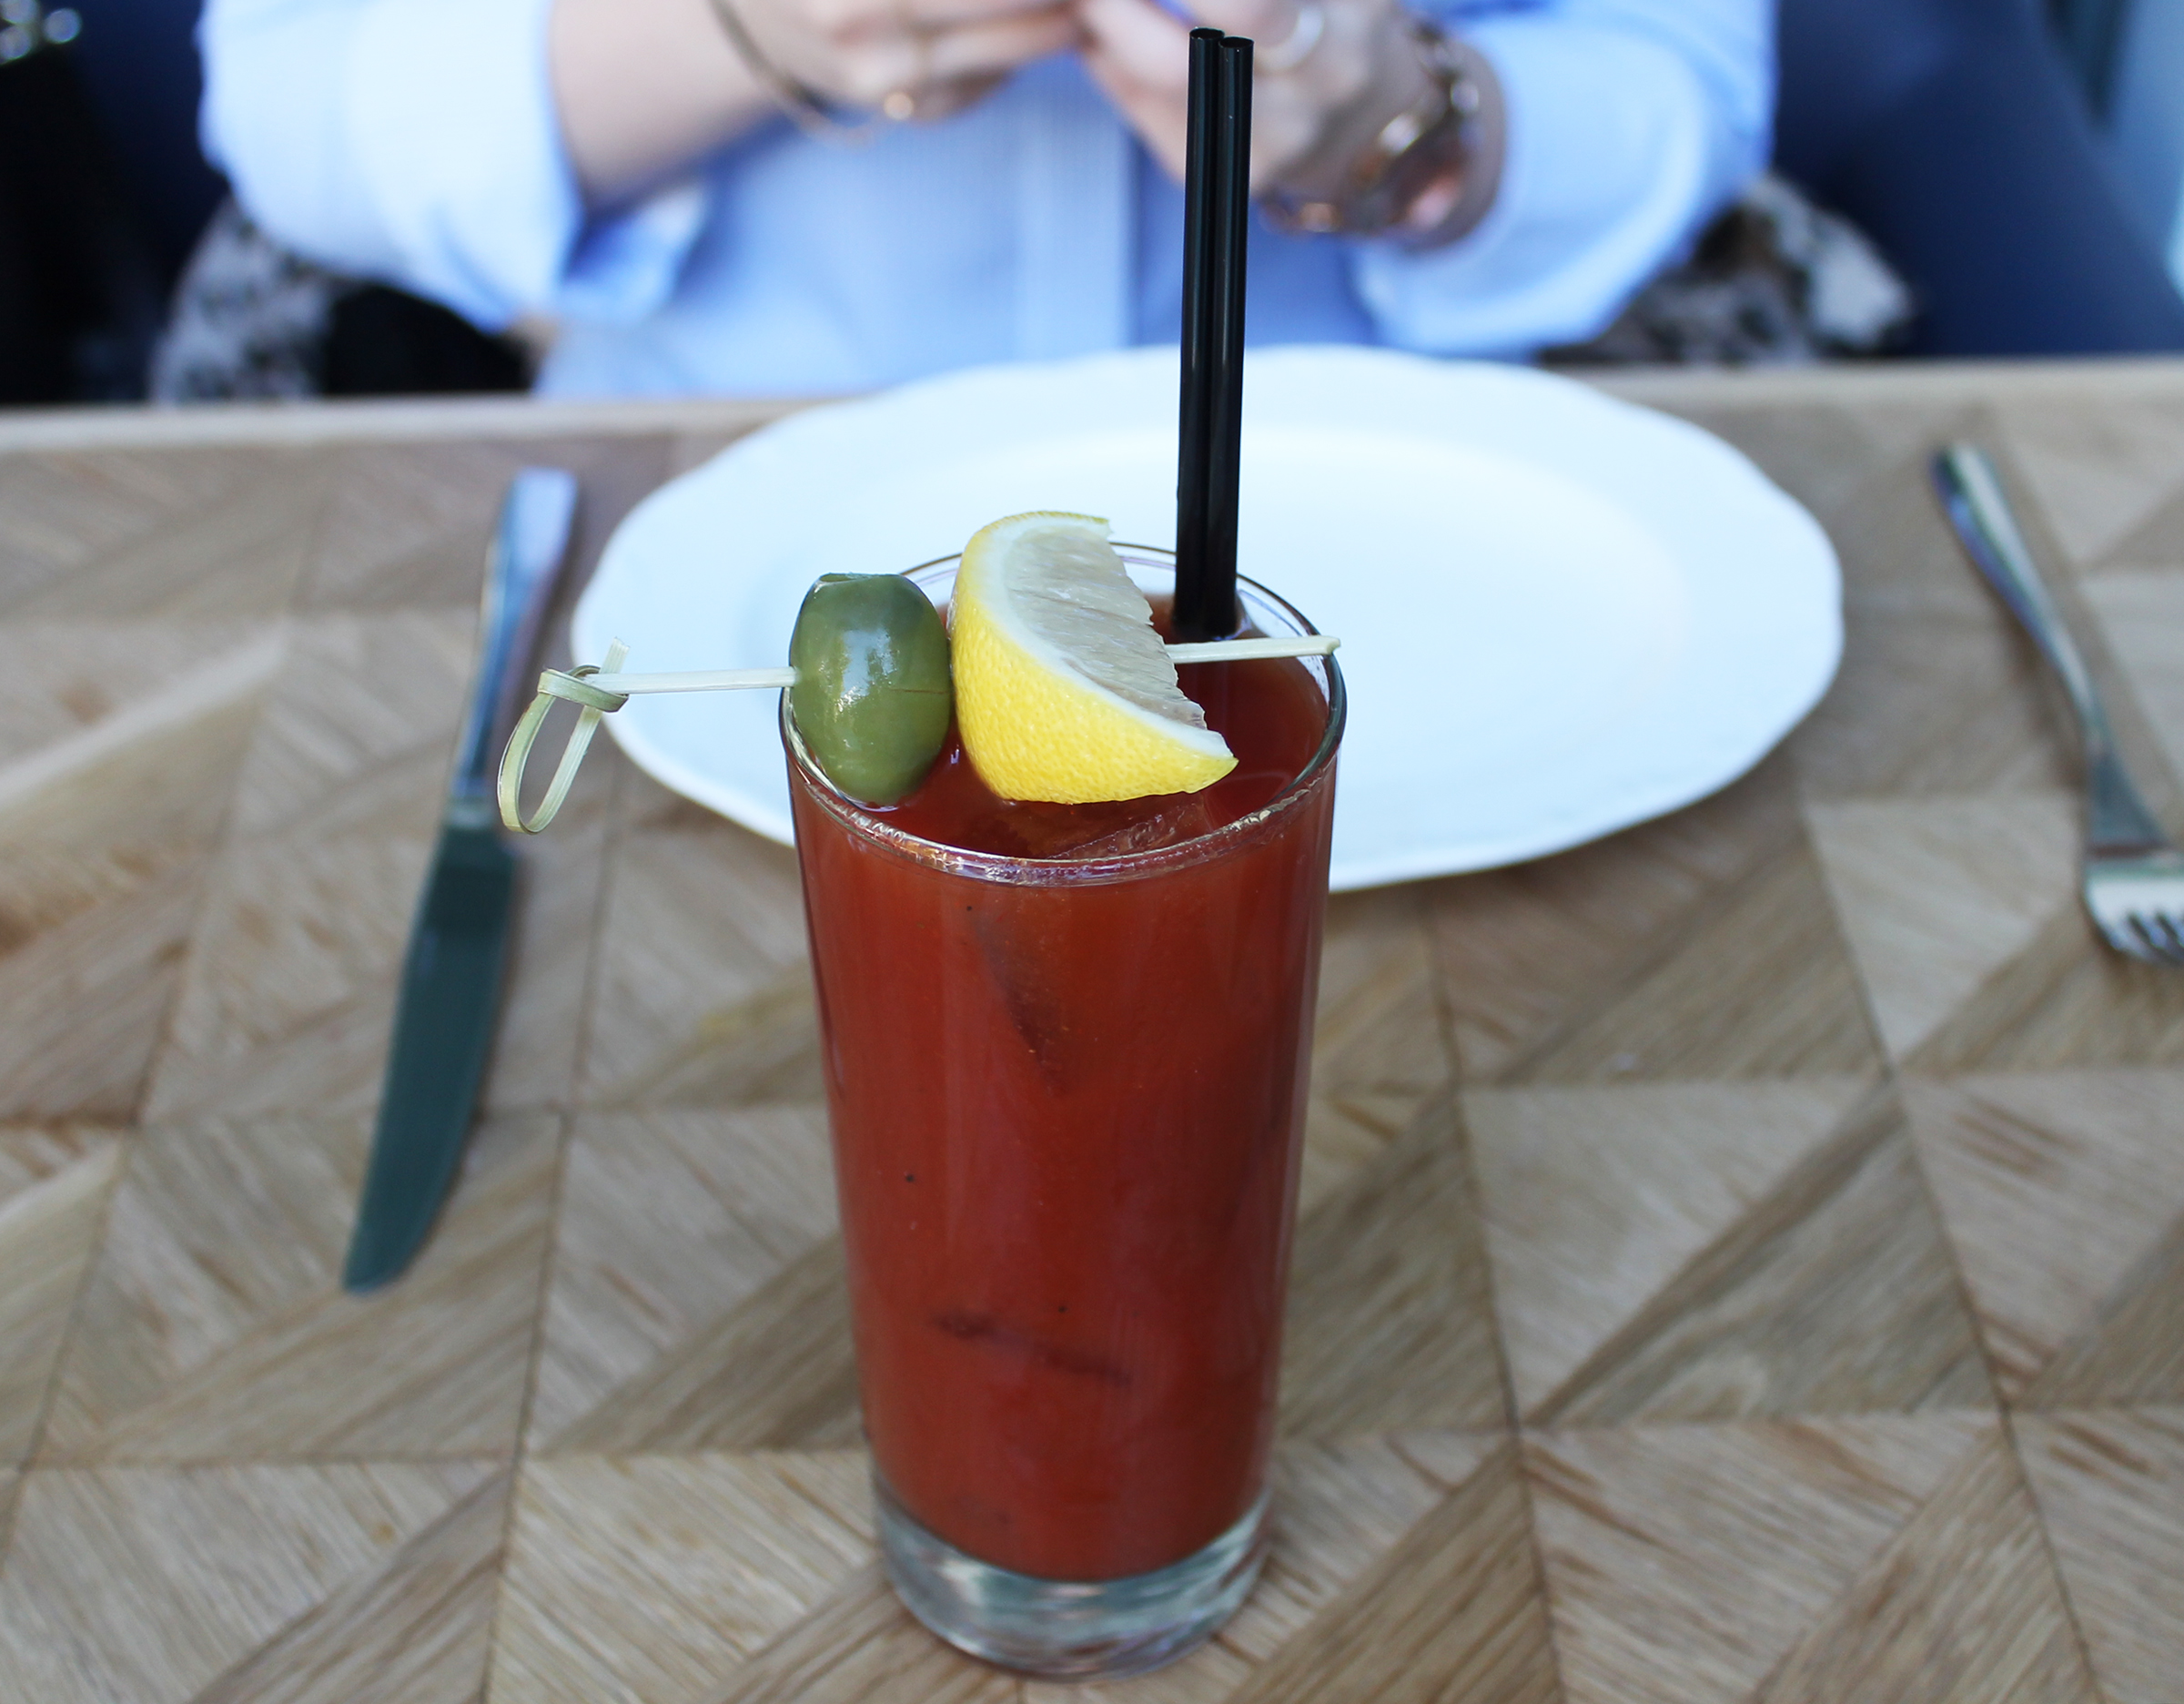 BLOODY MARY :St. George Green Chili Vodka, Tomato, Spices